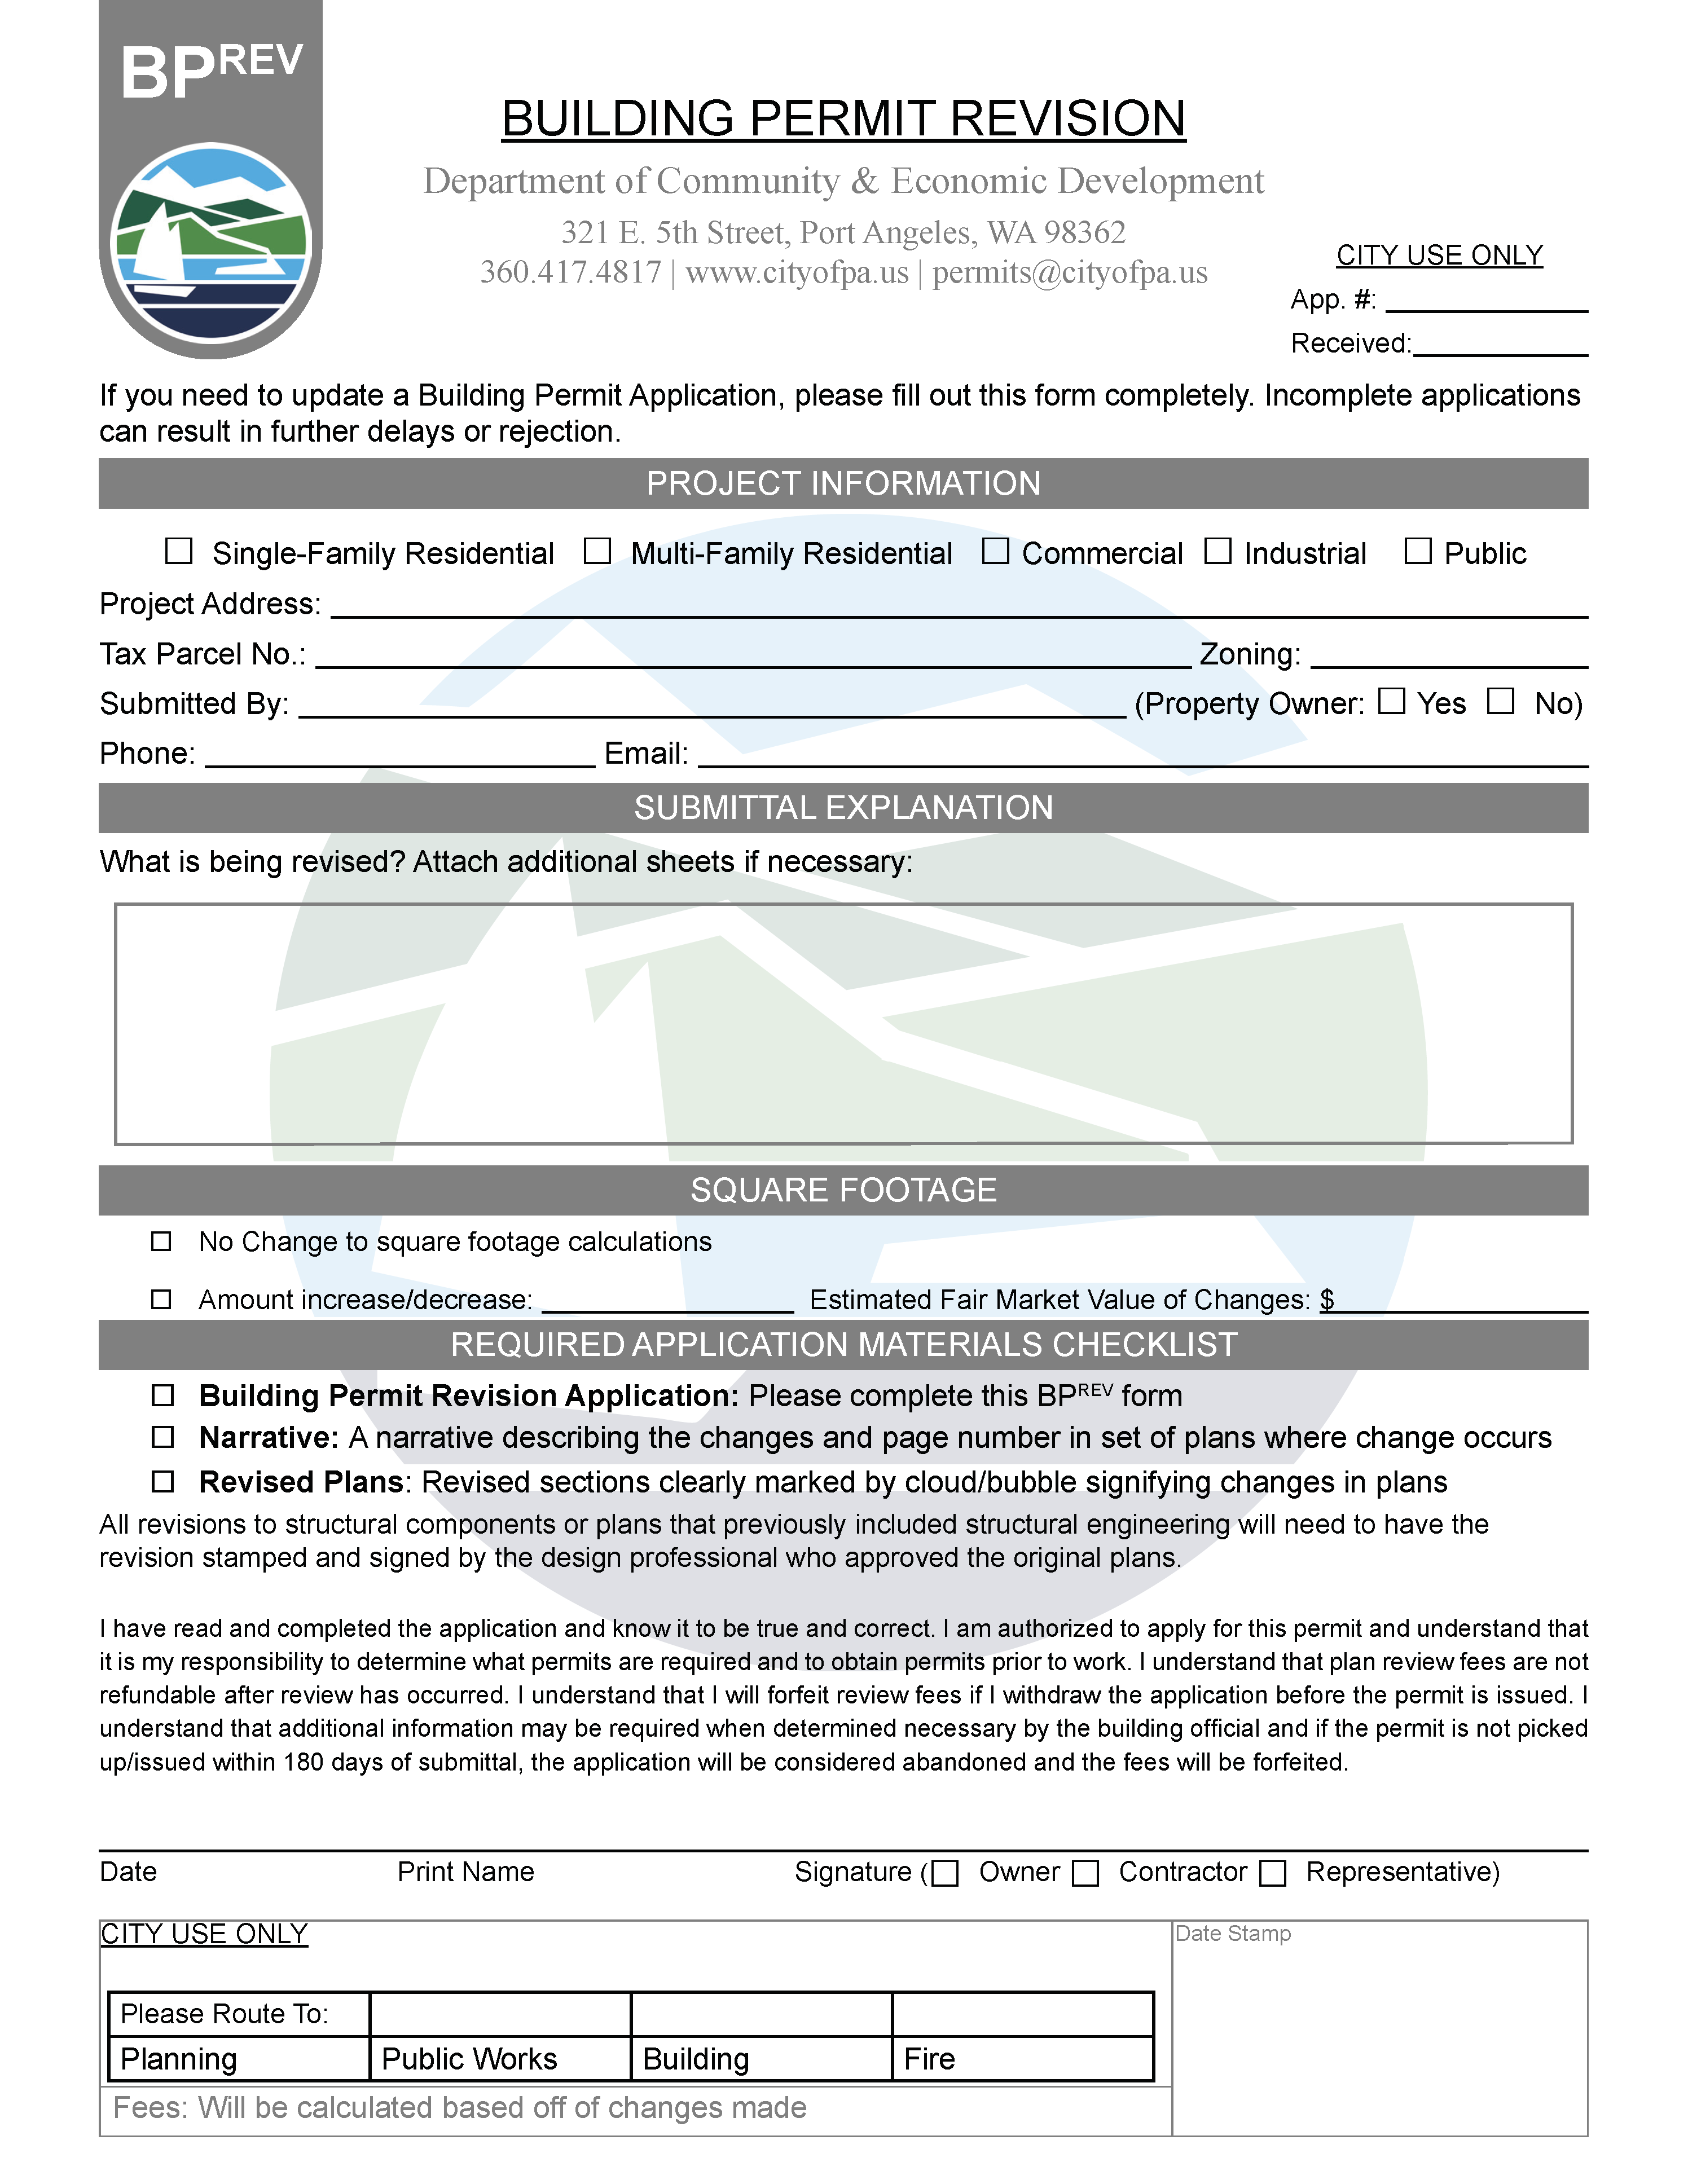 Buiding Permit Revision Permit Application